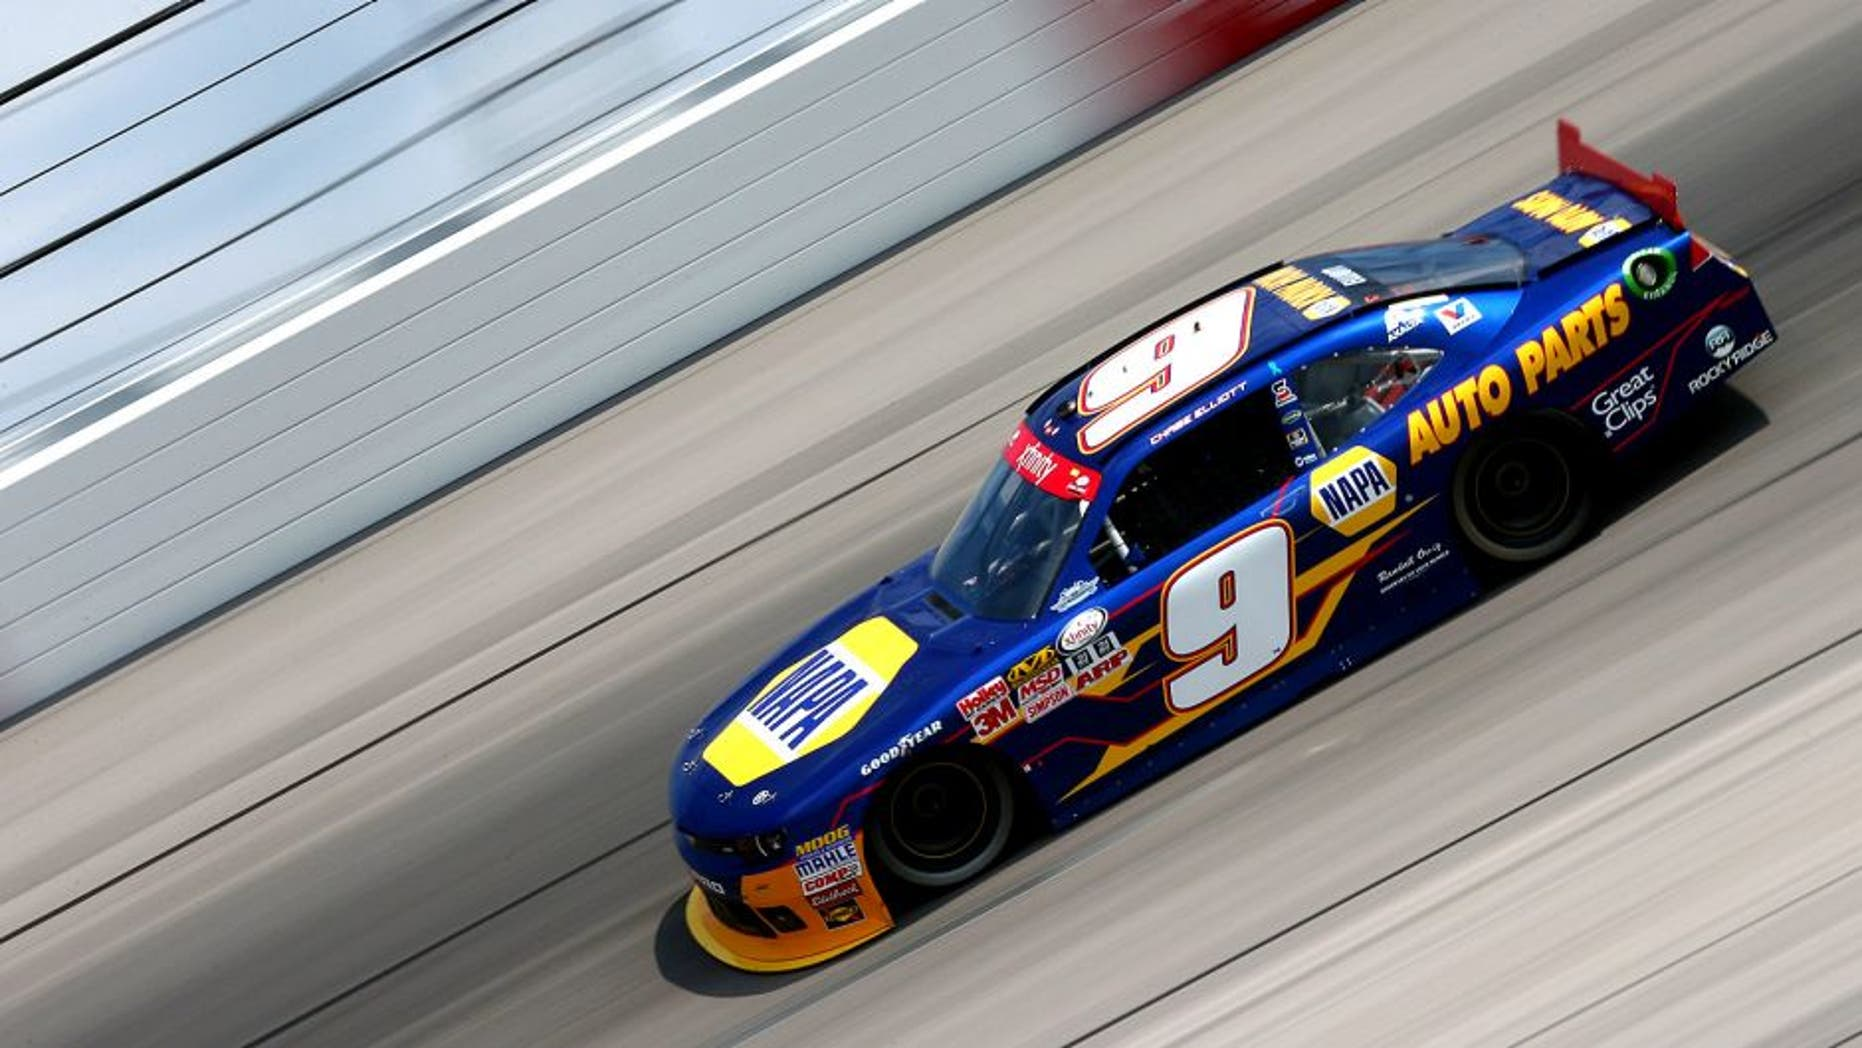 DARLINGTON, SC - SEPTEMBER 05: Chase Elliott, driver of the #9 NAPA Auto Parts Chevrolet, qualifies for the NASCAR XFINITY Series VFW Sport Clips Help A Hero 200 at Darlington Raceway on September 5, 2015 in Darlington, South Carolina. (Photo by Sarah Crabill/NASCAR via Getty Images)